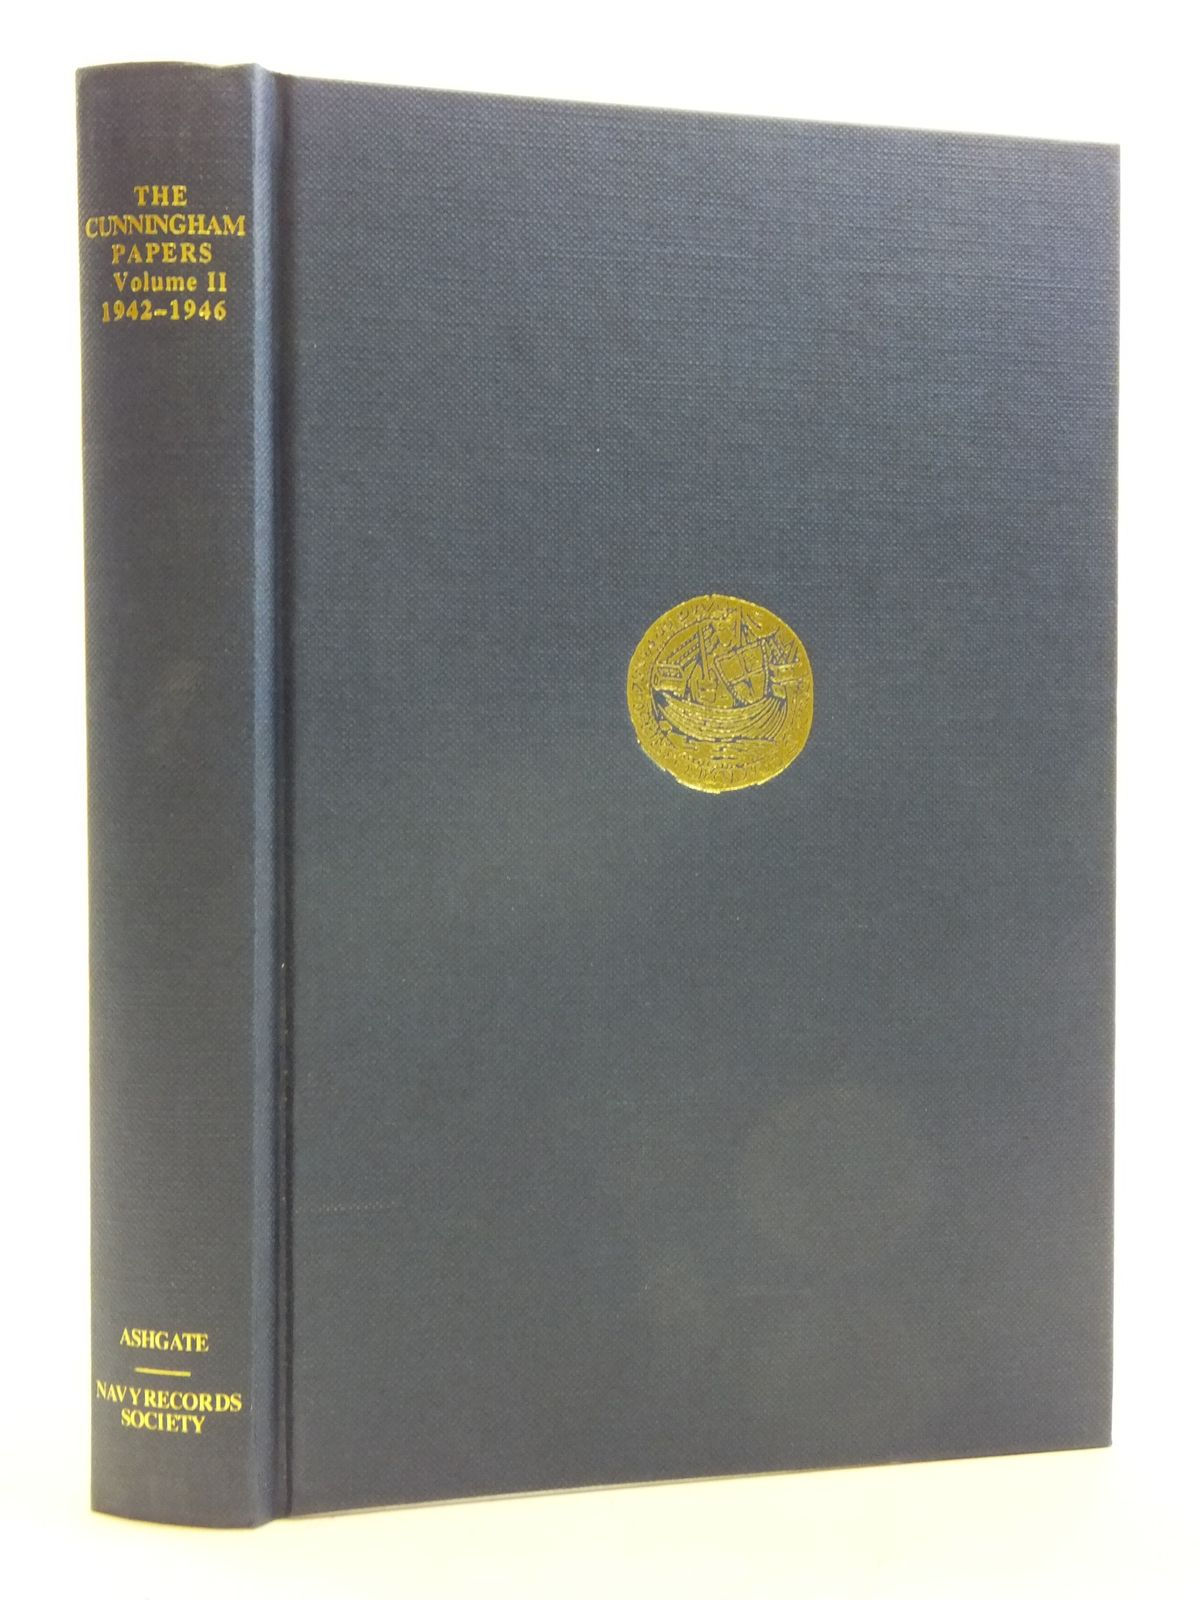 Photo of THE CUNNINGHAM PAPERS VOLUME II THE TRIUMPH OF ALLIED SEA POWER 1942-1946 written by Simpson, Michael published by Ashgate (STOCK CODE: 2120386)  for sale by Stella & Rose's Books